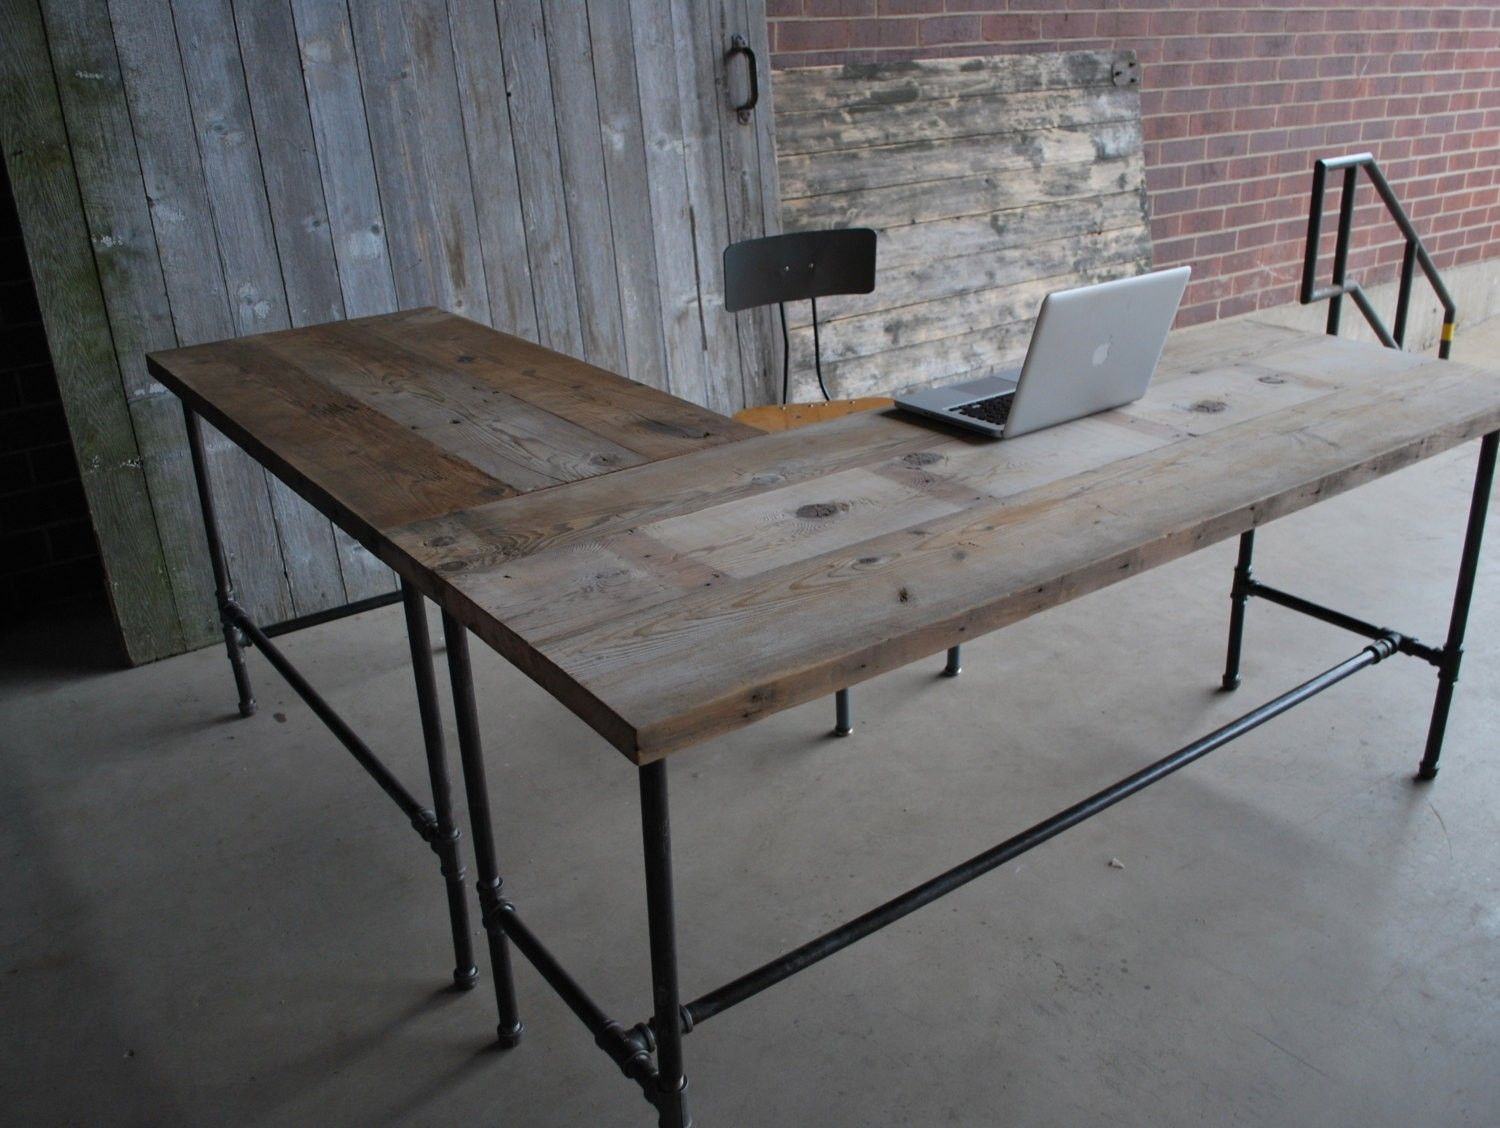 popular furniture wood. modern industry lshape reclaimed wood desk this place has a lot of cool furniture popular